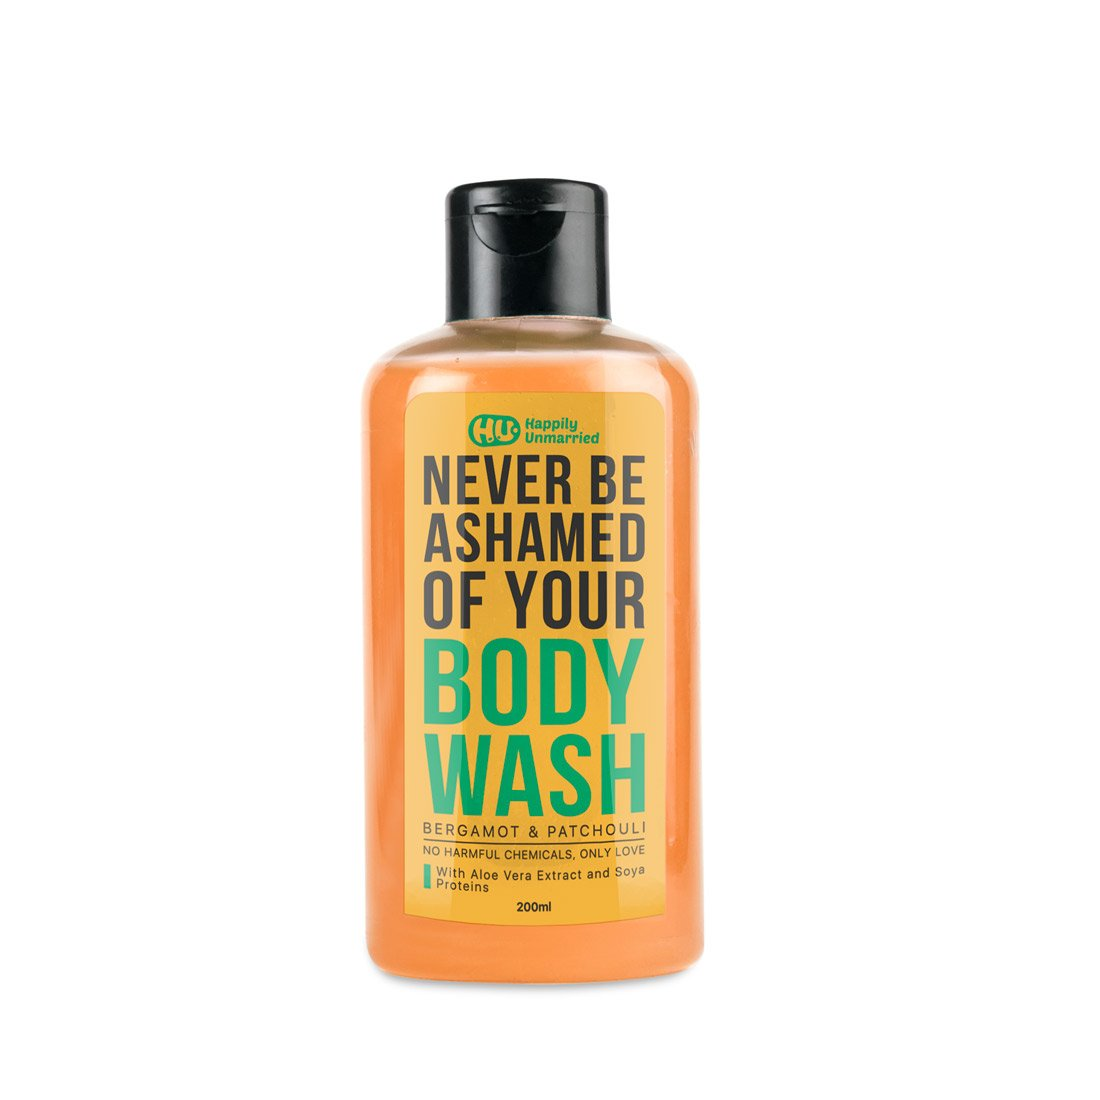 Happily Unmarried Body Wash, 200ml (Bergamot and Patchouli)